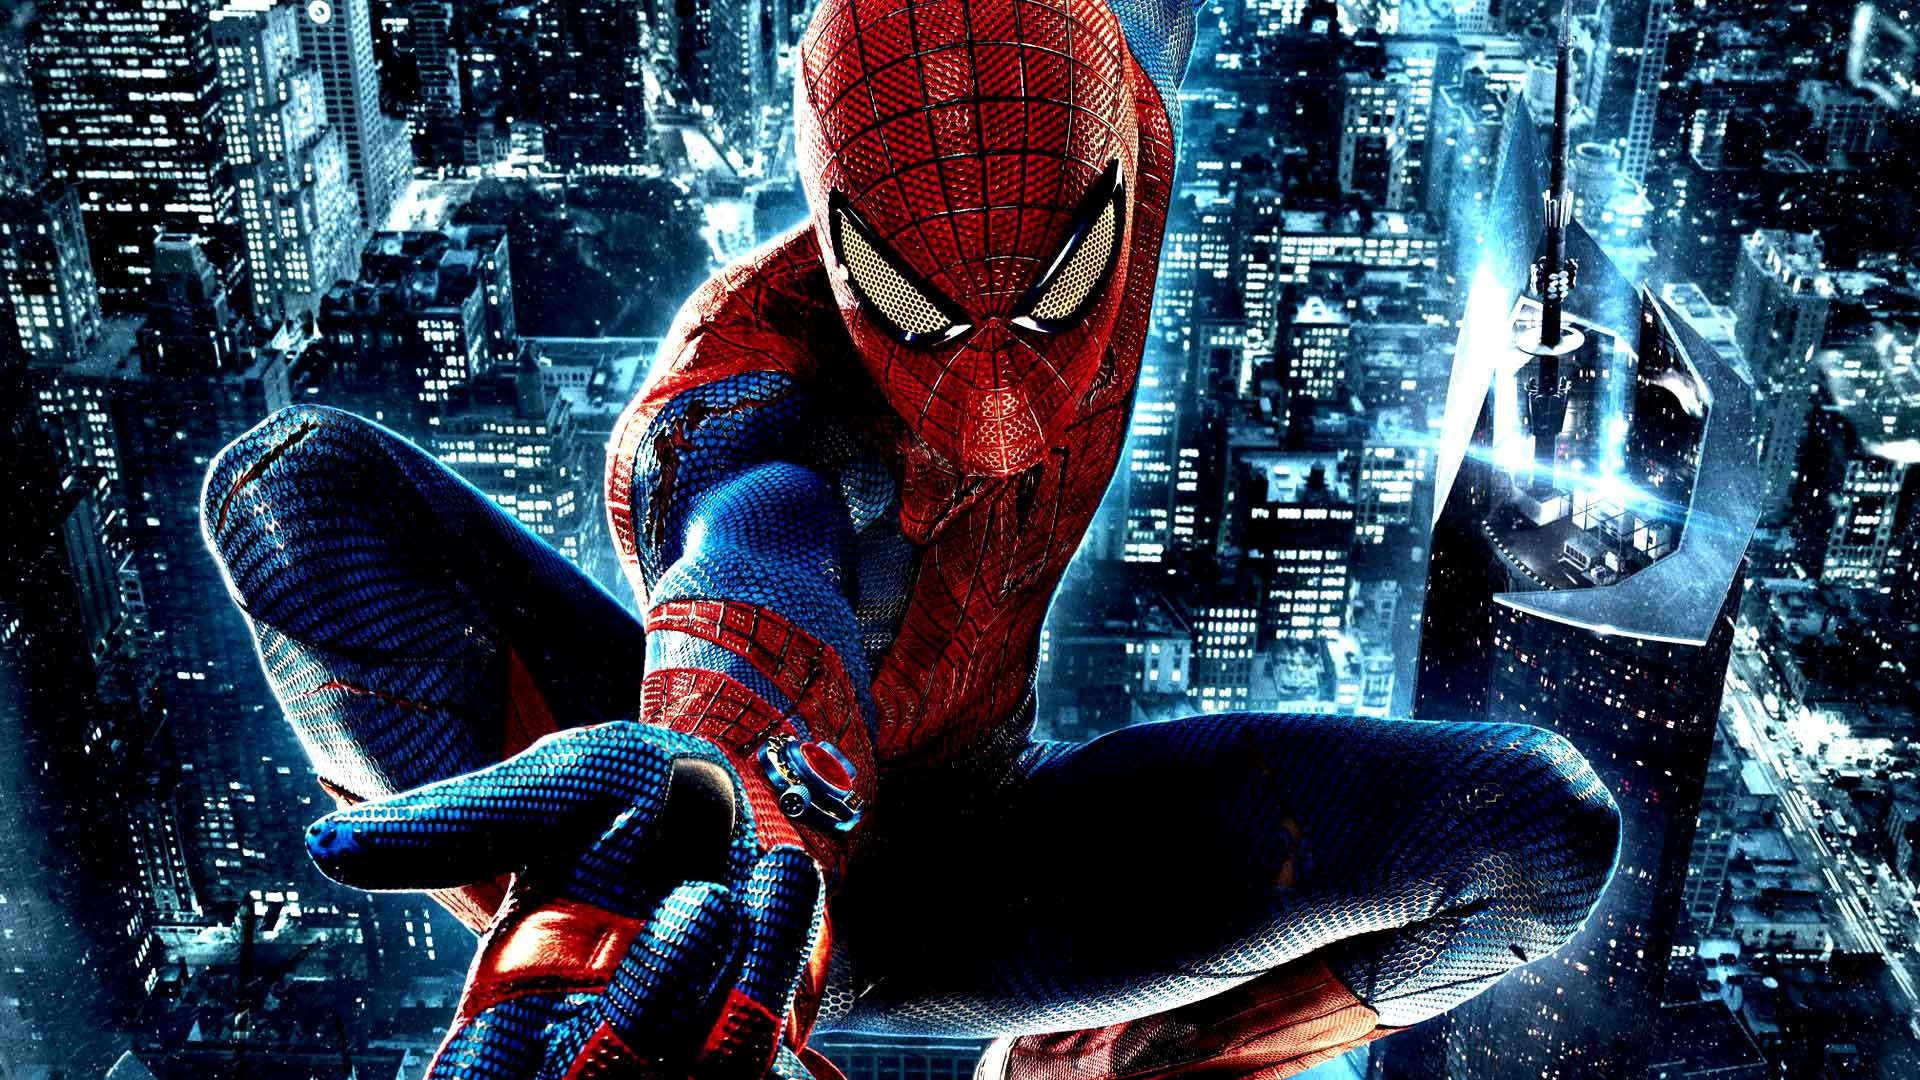 1920x1080 Download 2015 The Amazing Spiderman 2 Pictures | HD Wallpapers .